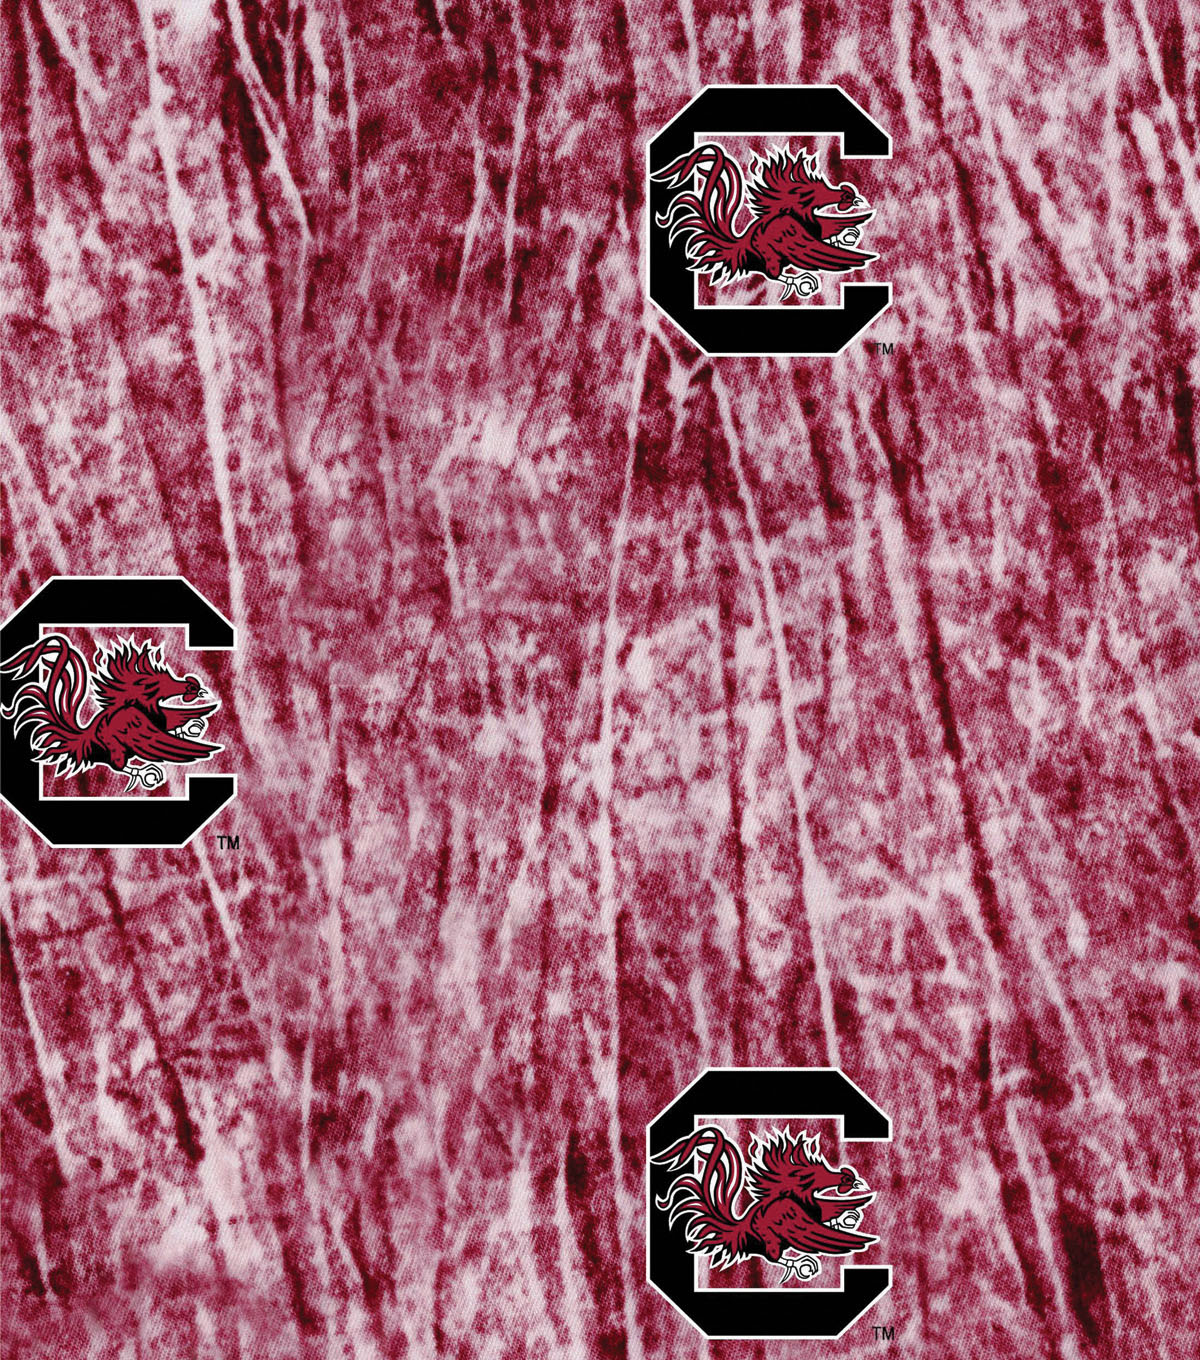 University of South Carolina Gamecocks Cotton Fabric 44\u0022-Tie Dye